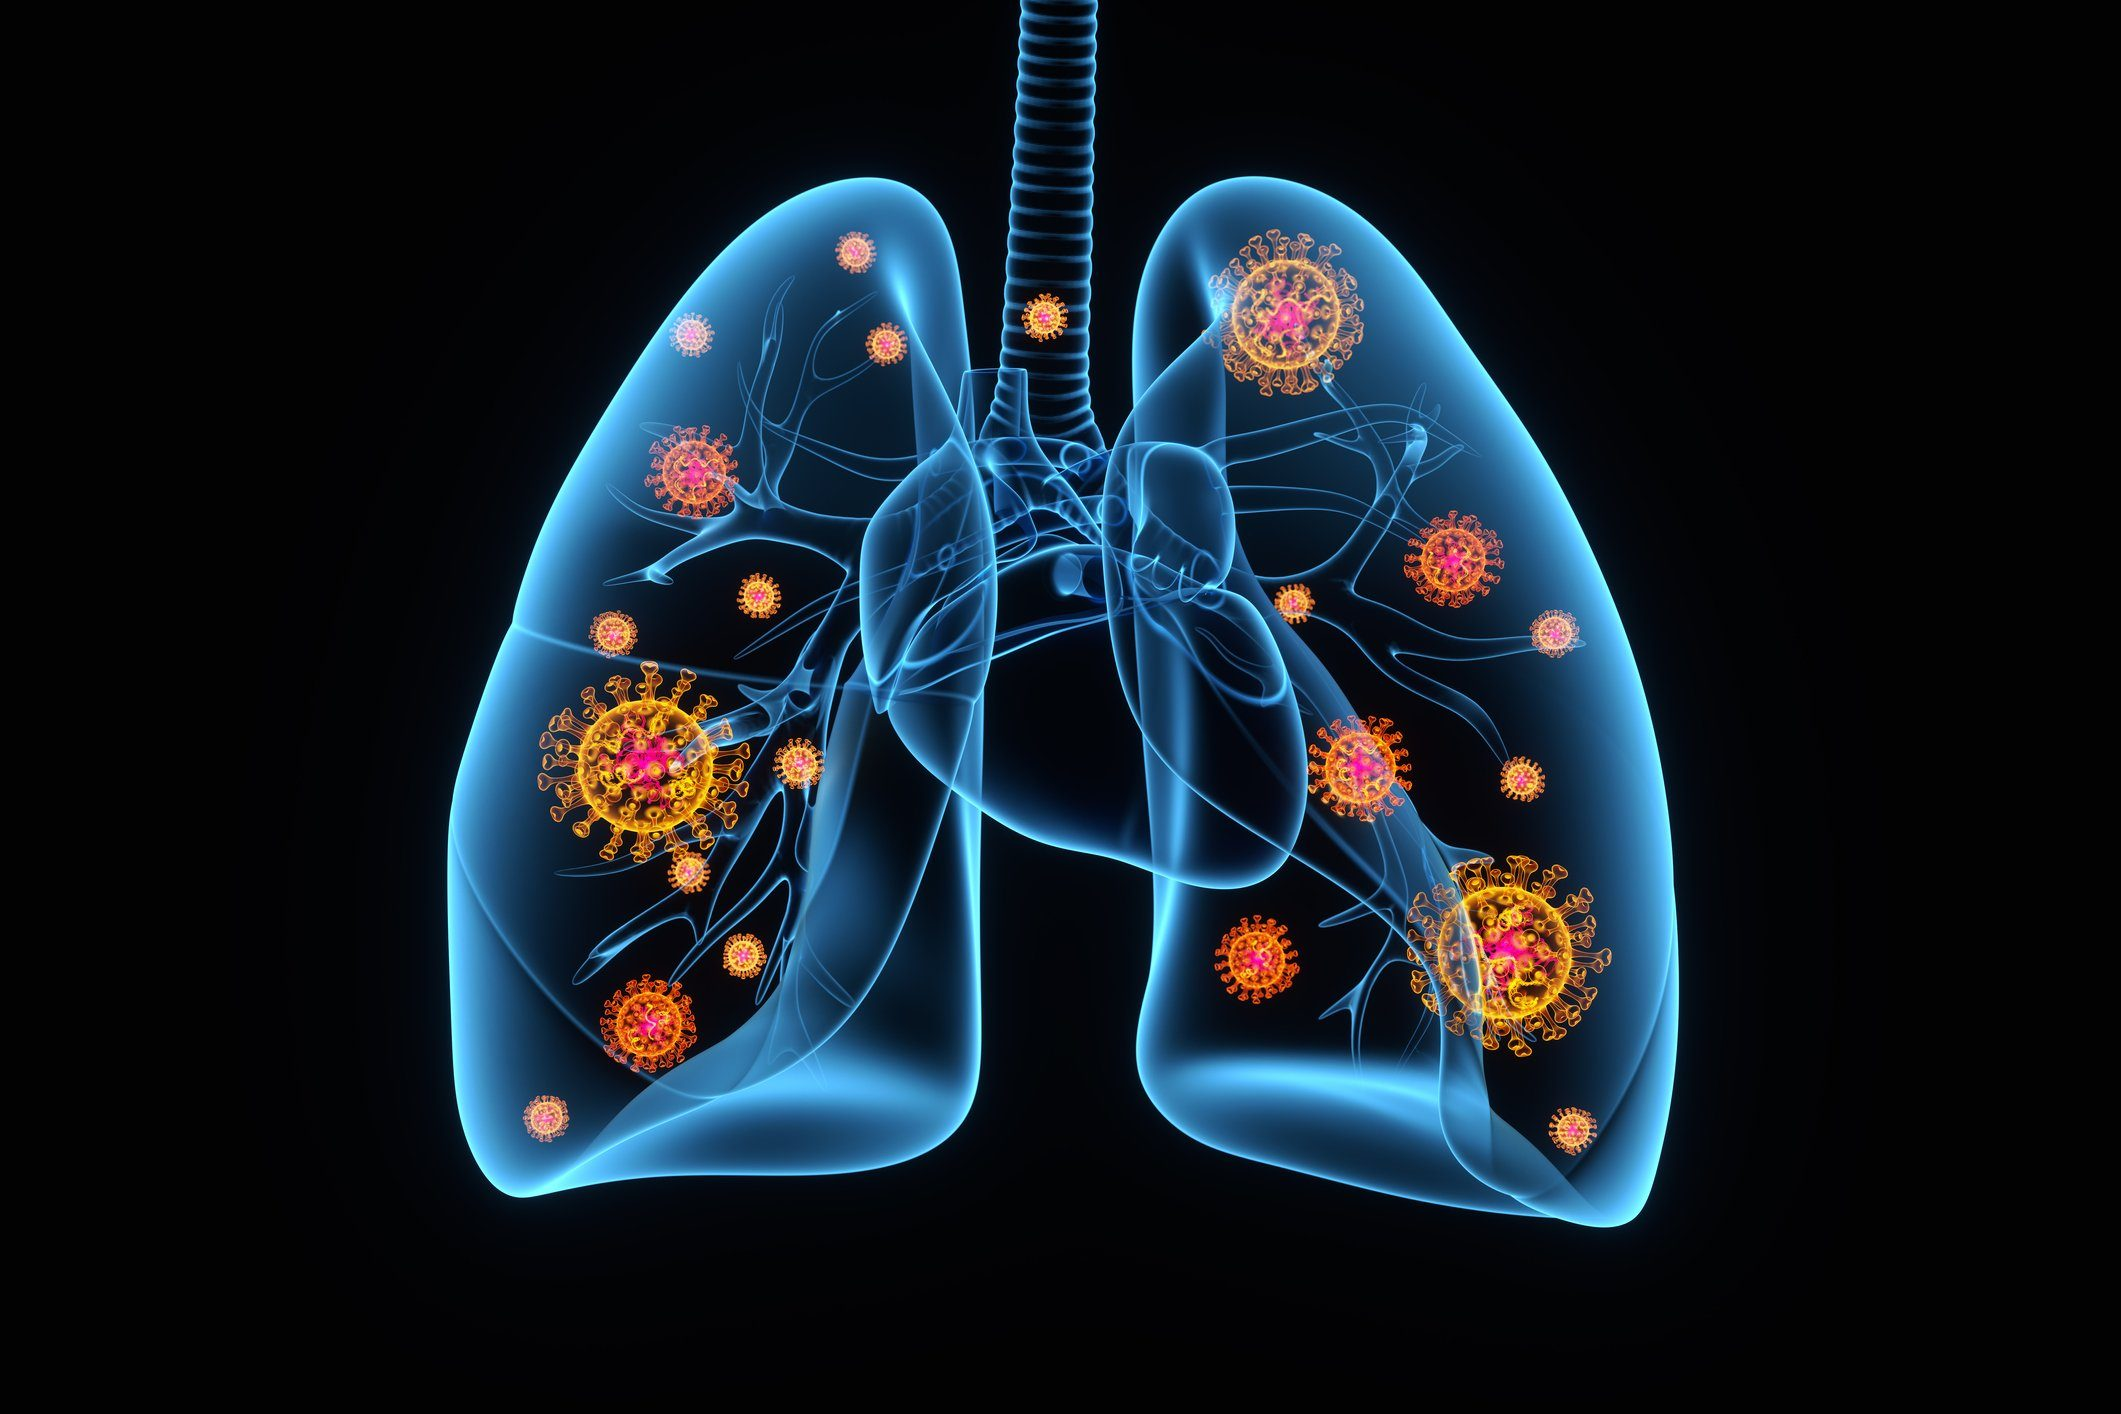 medical 3d rendering of lungs